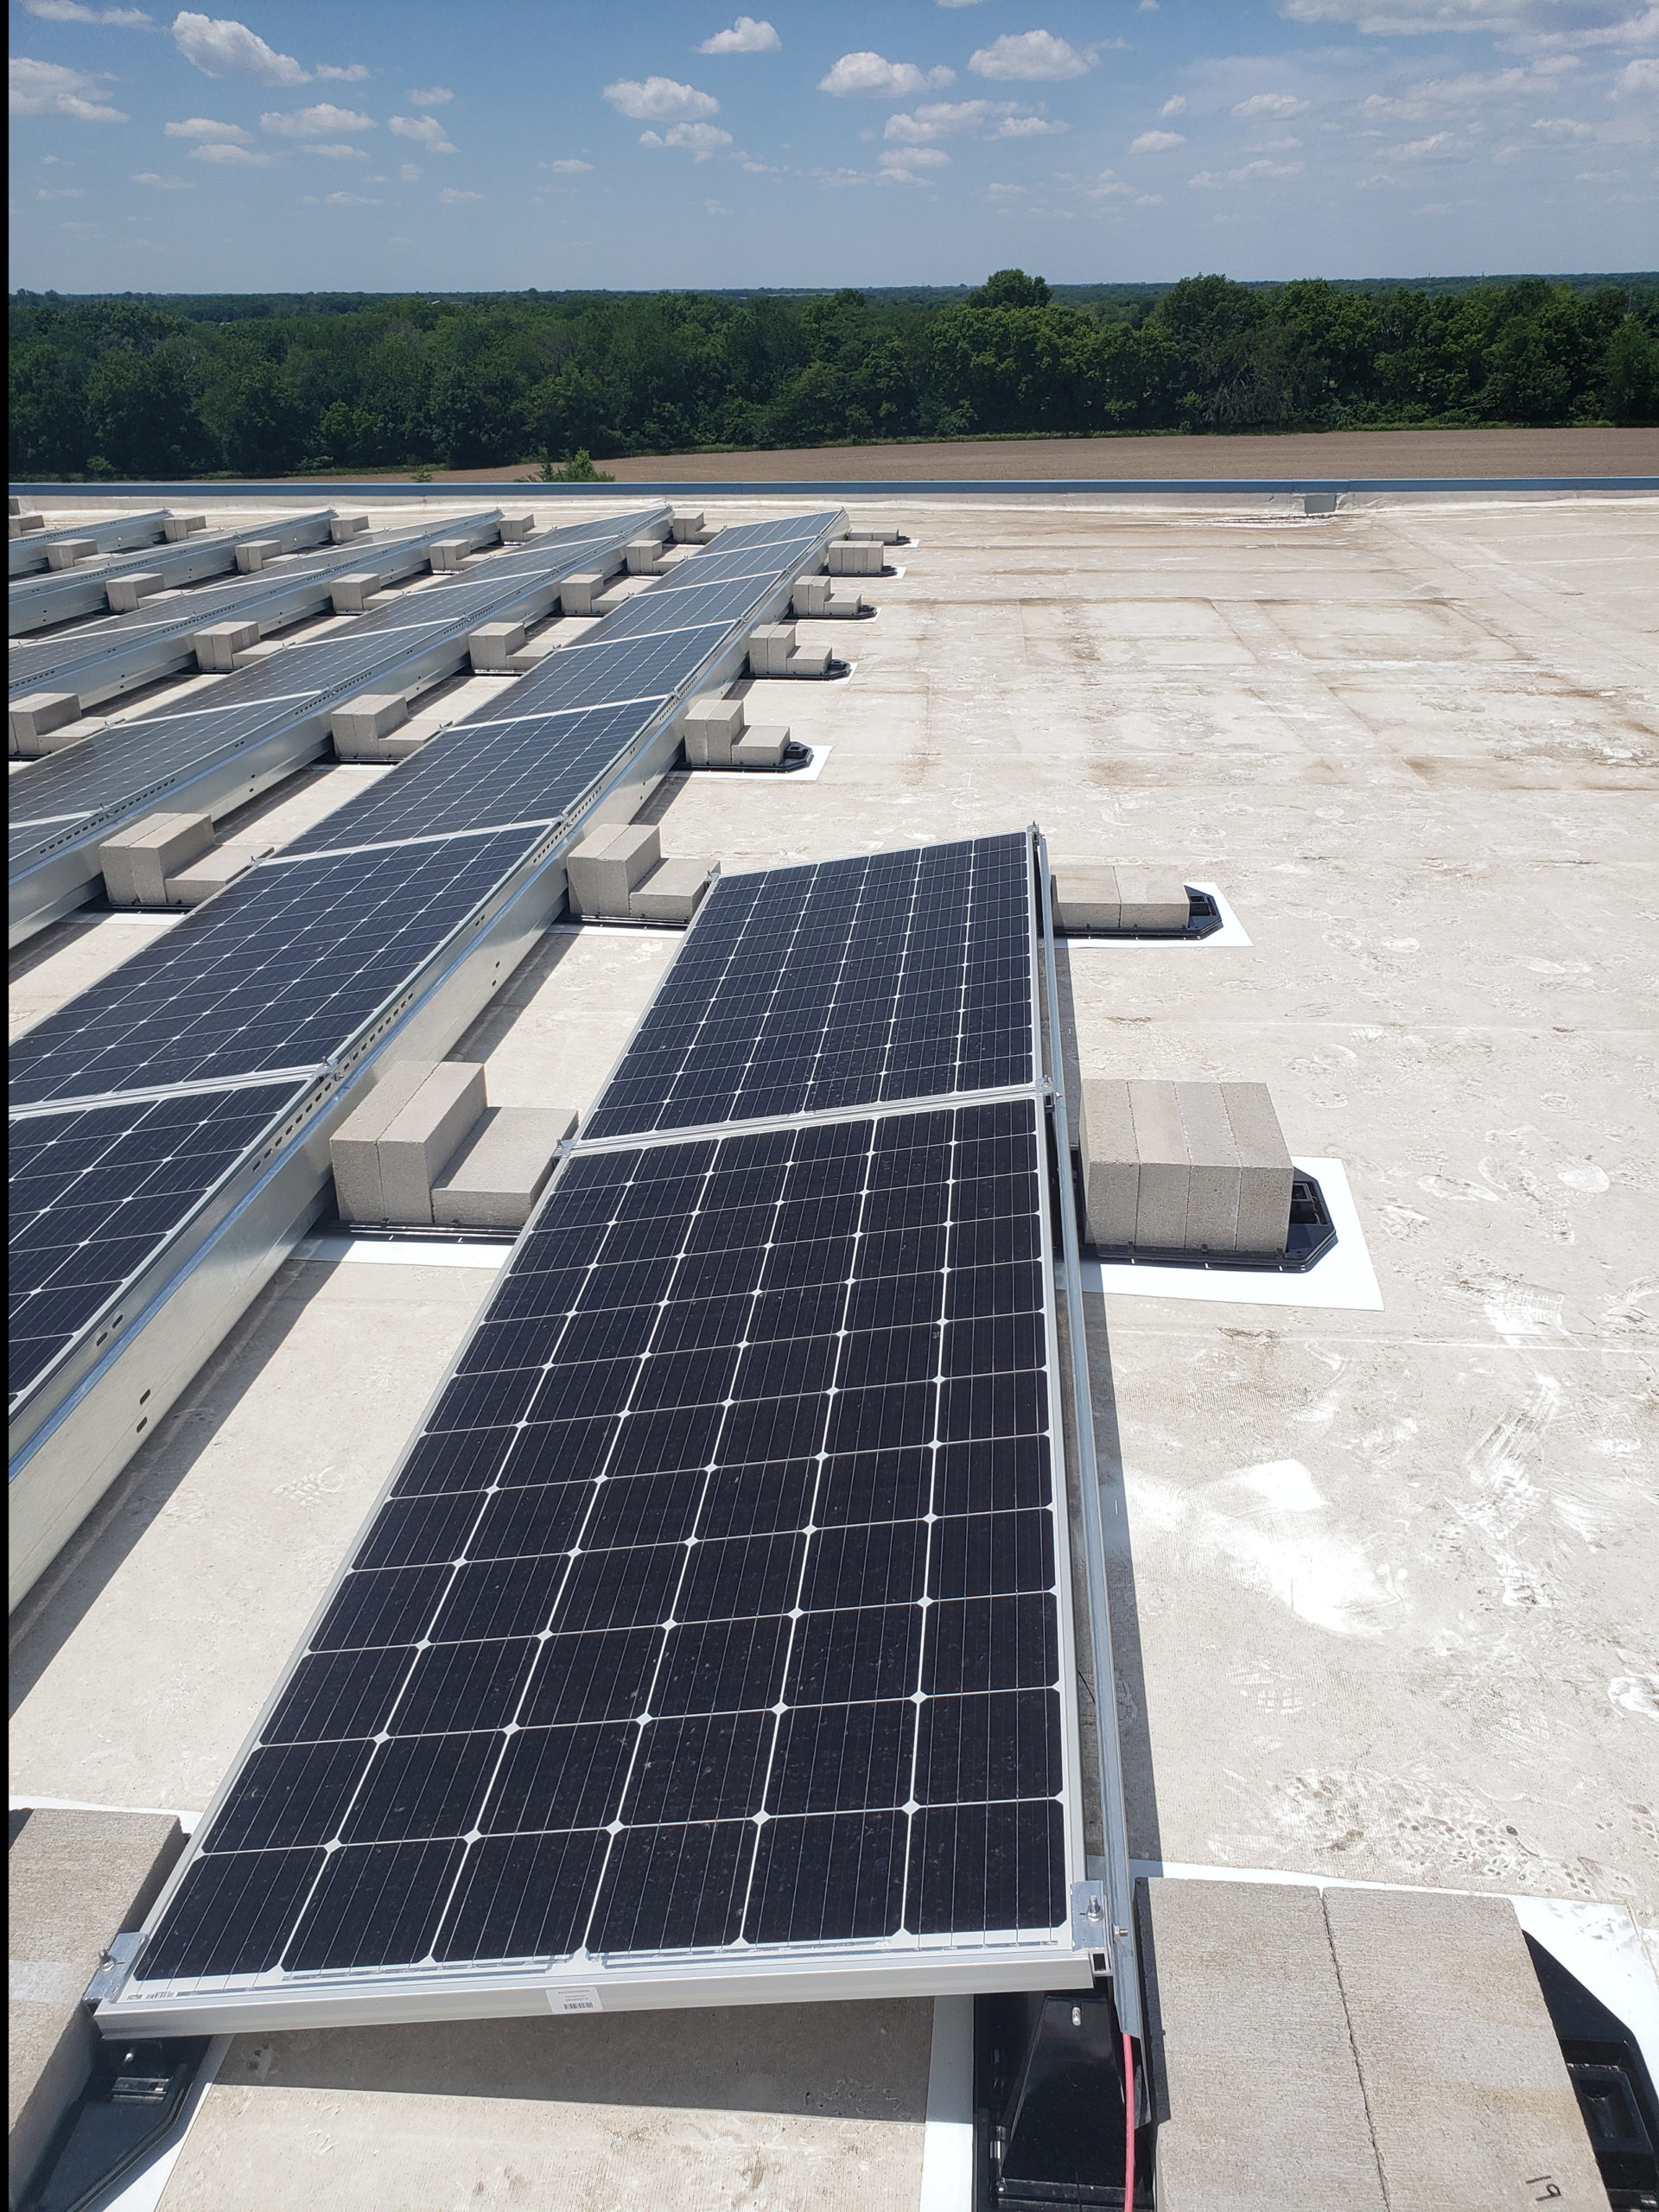 A close up view of the commercial solar system rows is seen from standing on the rooftop. They are brightly lit at the best angle to harness the sun's solar energy.